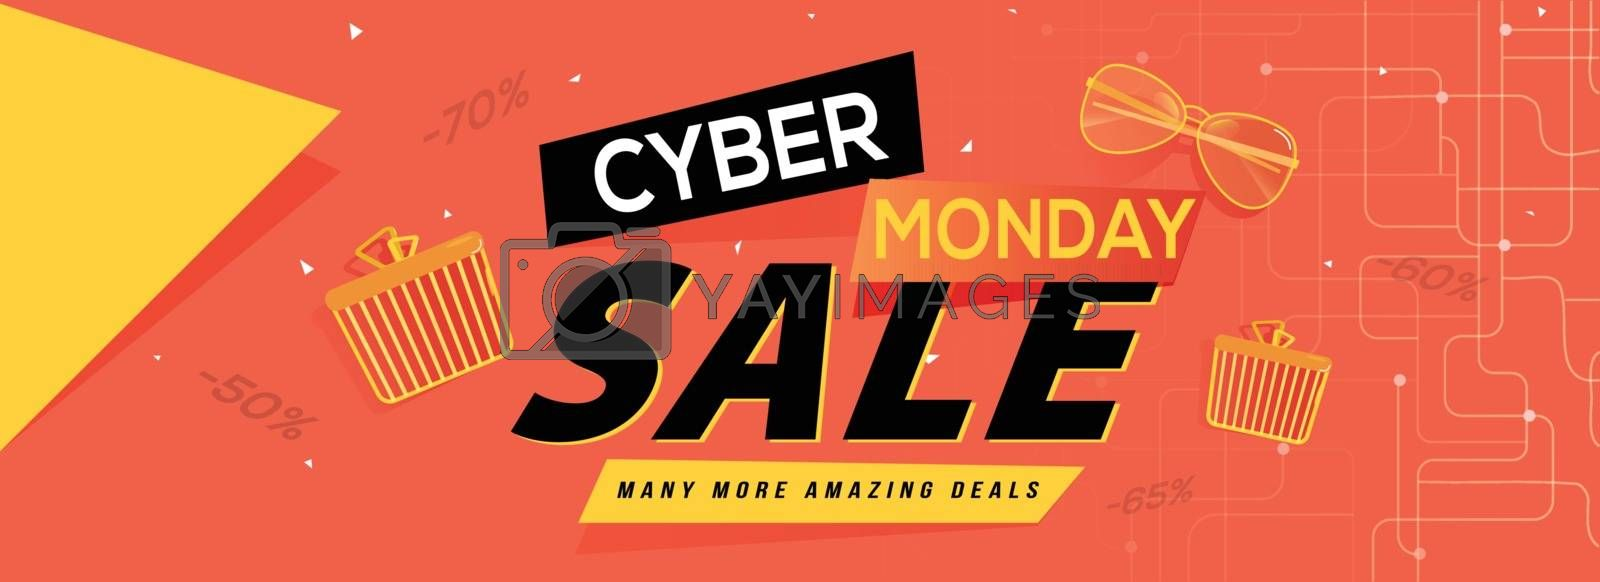 Cyber Monday Sale banner or header design with exclusive discoun by aispl